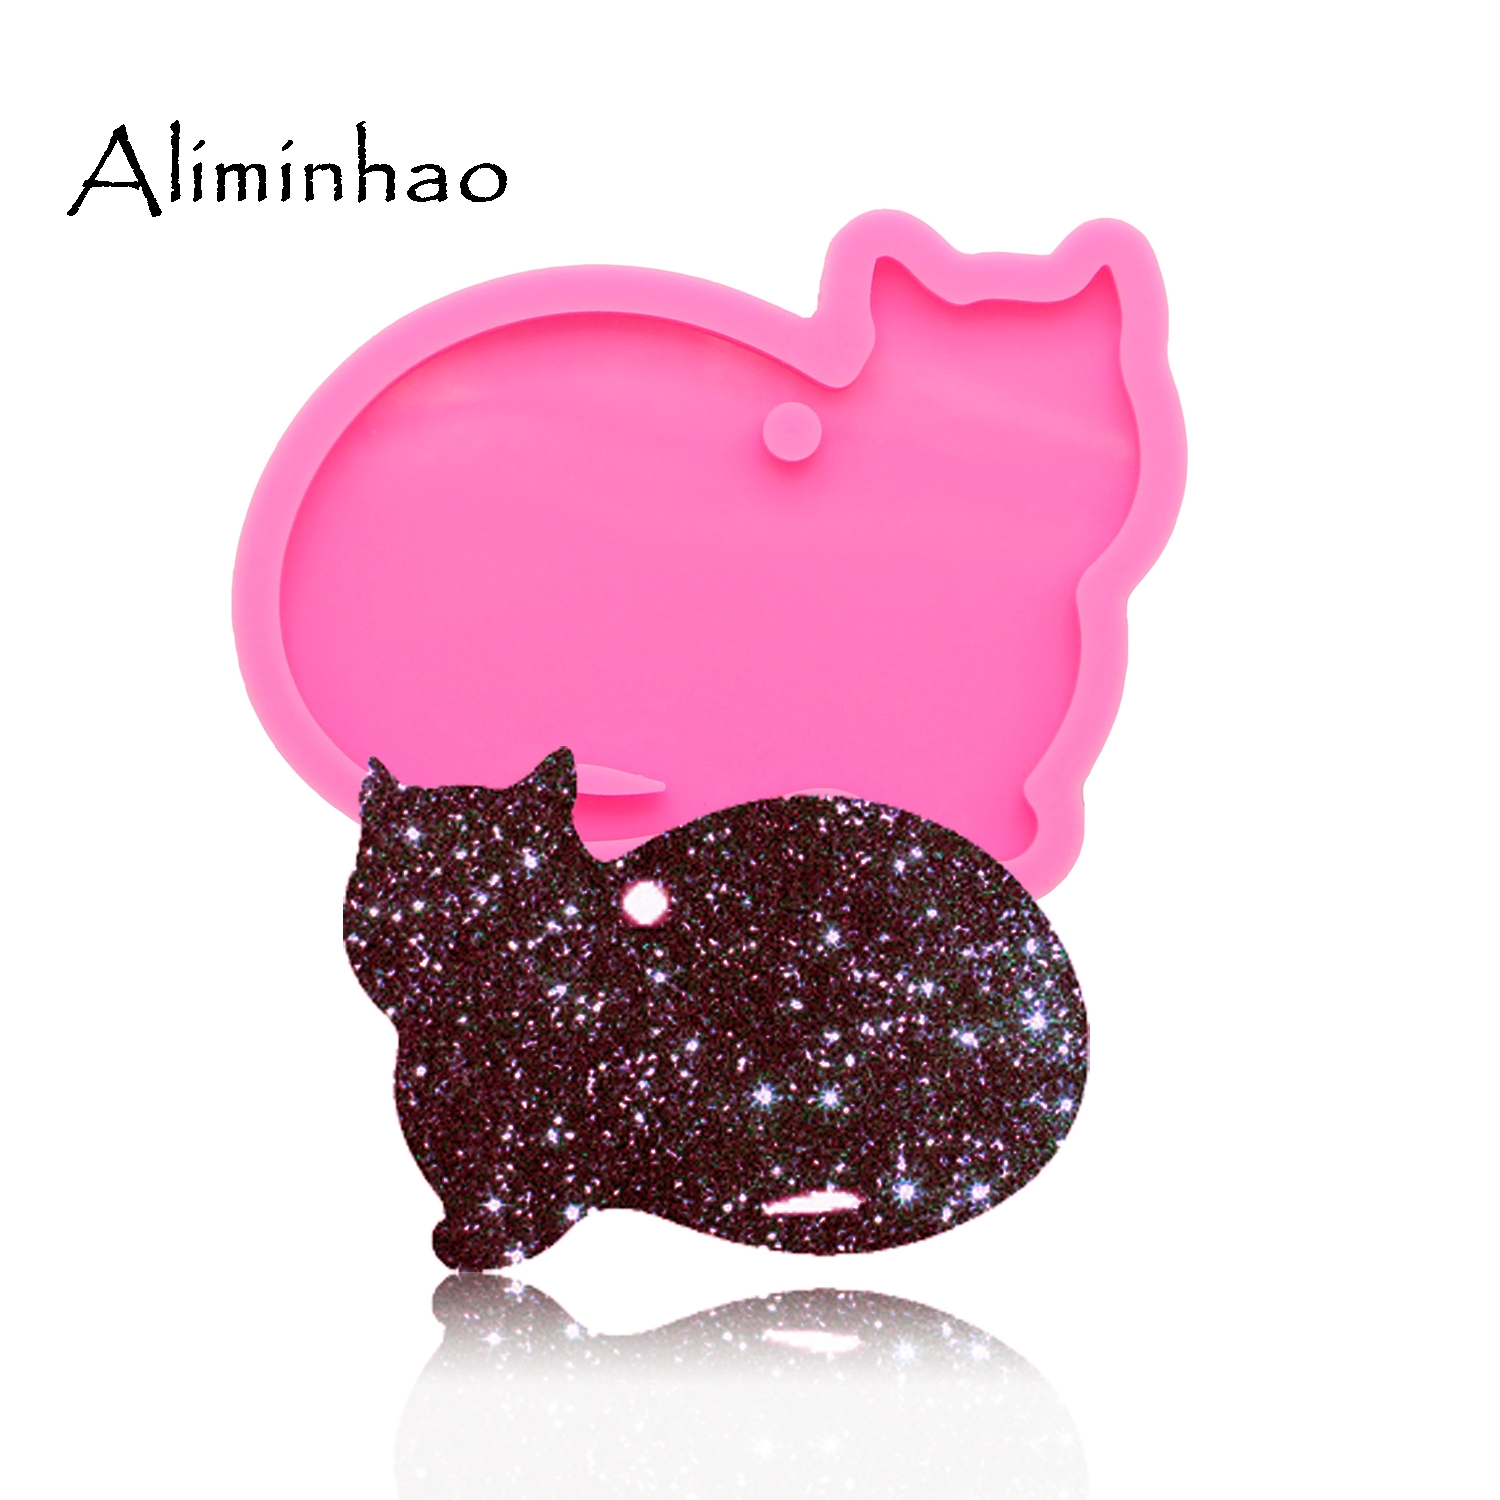 DY0089 Shiny Cat Keychains Mold Pendant Polymer Clay DIY Jewelry Making Glitter Epoxy Silicone Resin Mold